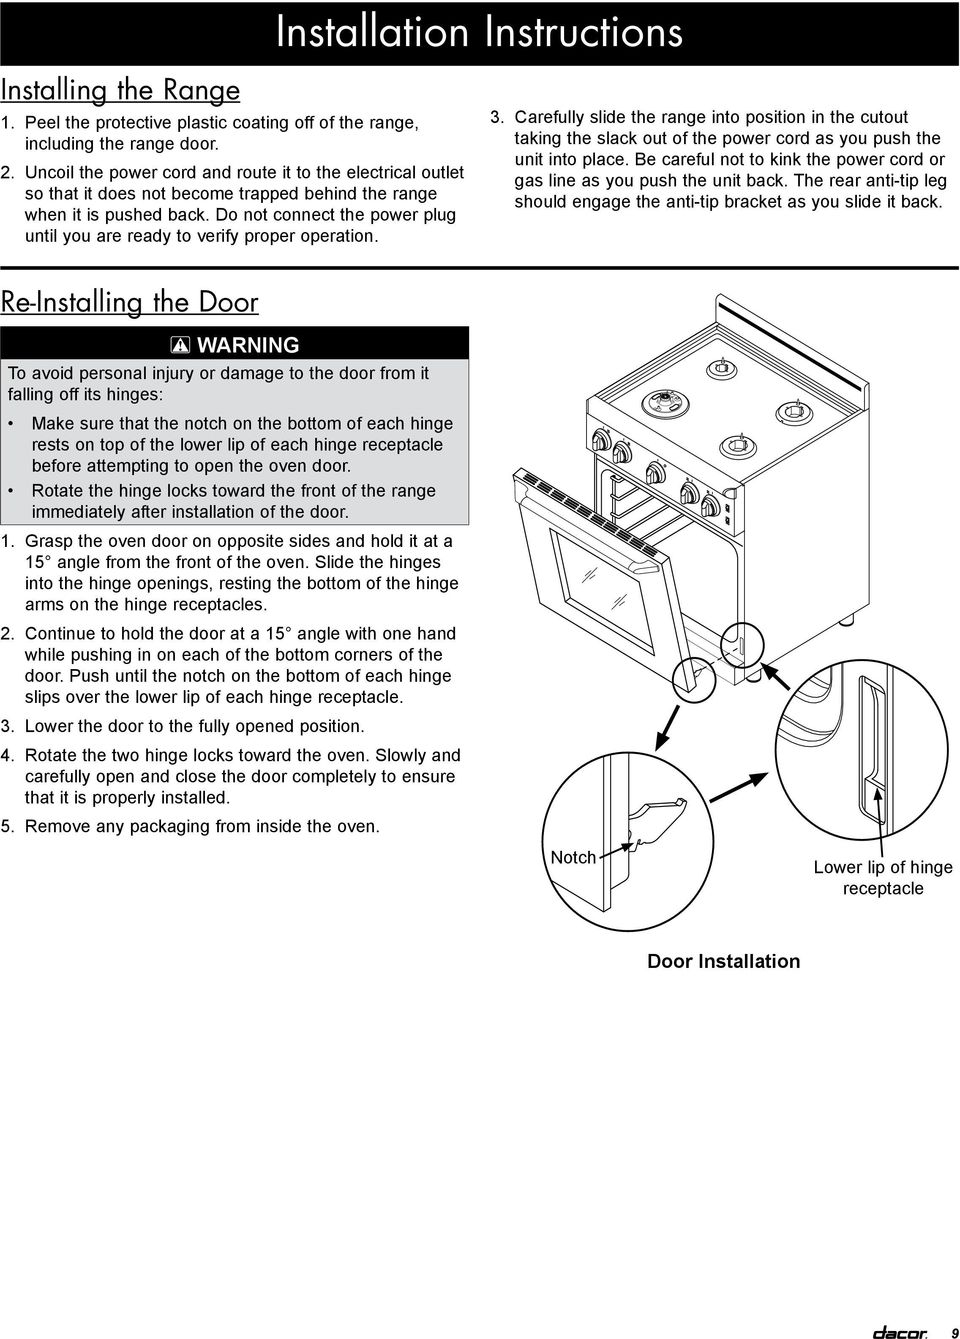 Installation Instructions Epicure 30 Inch Gas Range For Use With Electric Cord Wiring Diagram Do Not Connect The Power Plug Until You Are Ready To Verify Proper Operation